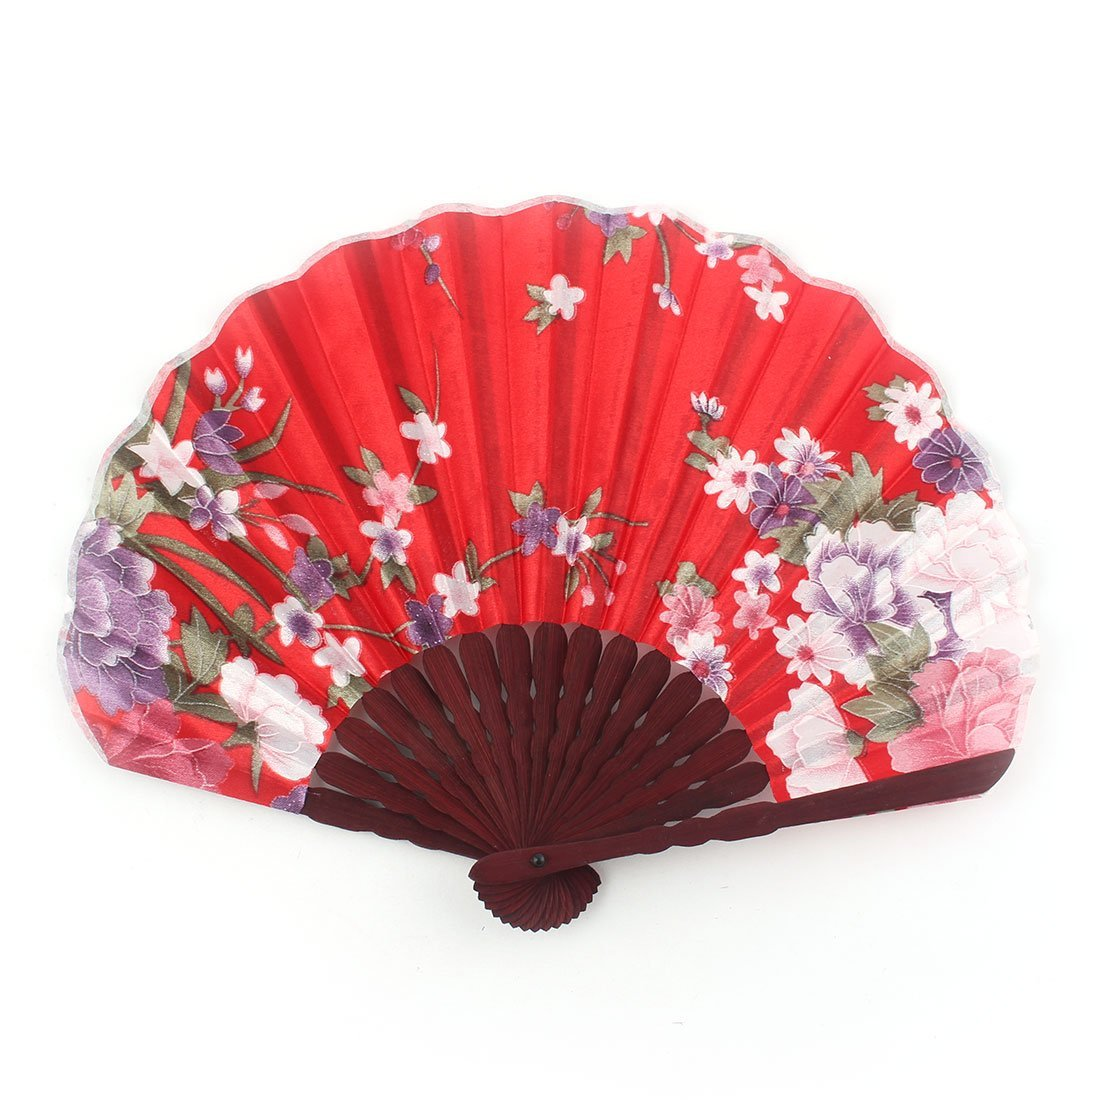 uxcell Peony Blossom Printed Ladies Summer Hand-held Folding Dancing Hand Fan Craft